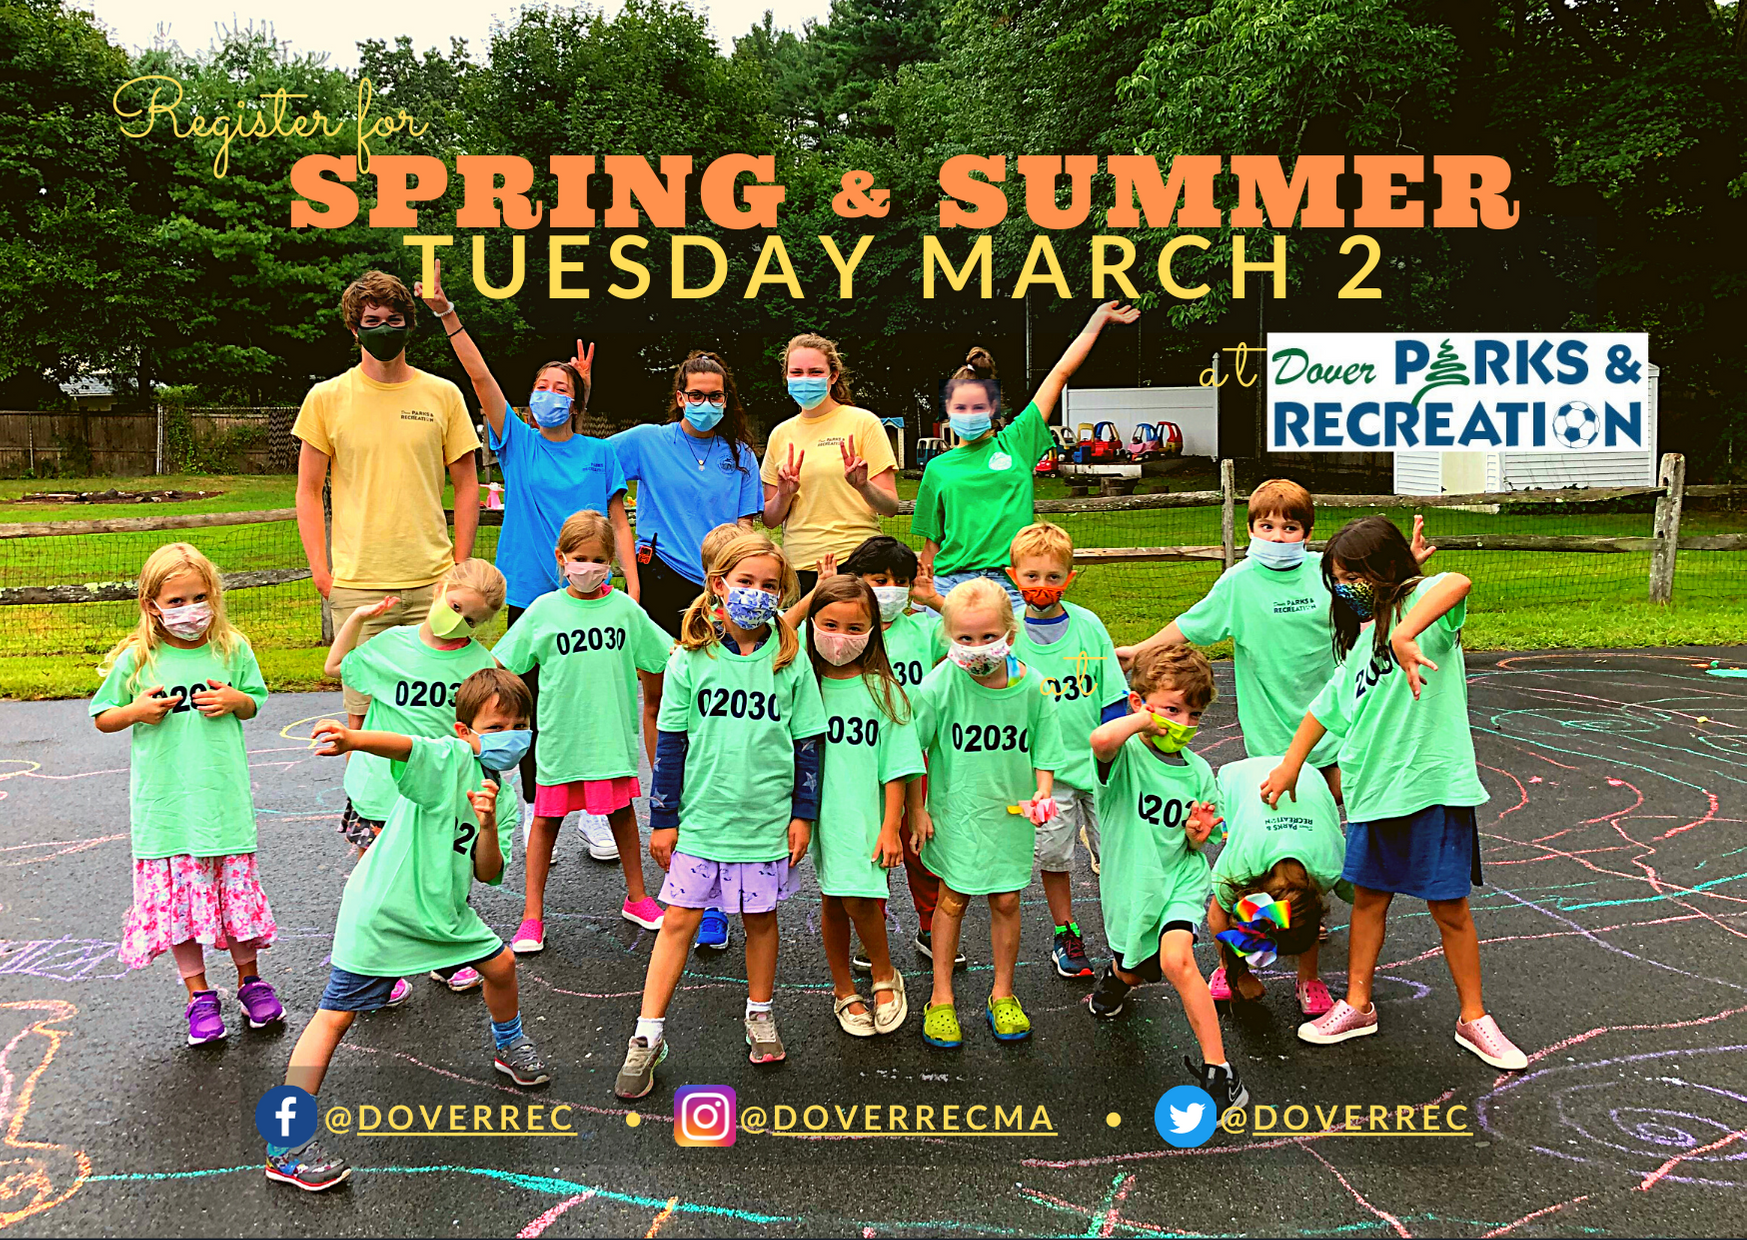 DoverRec SPRING.SUMMER 2021 REGISTRATION DETAILS